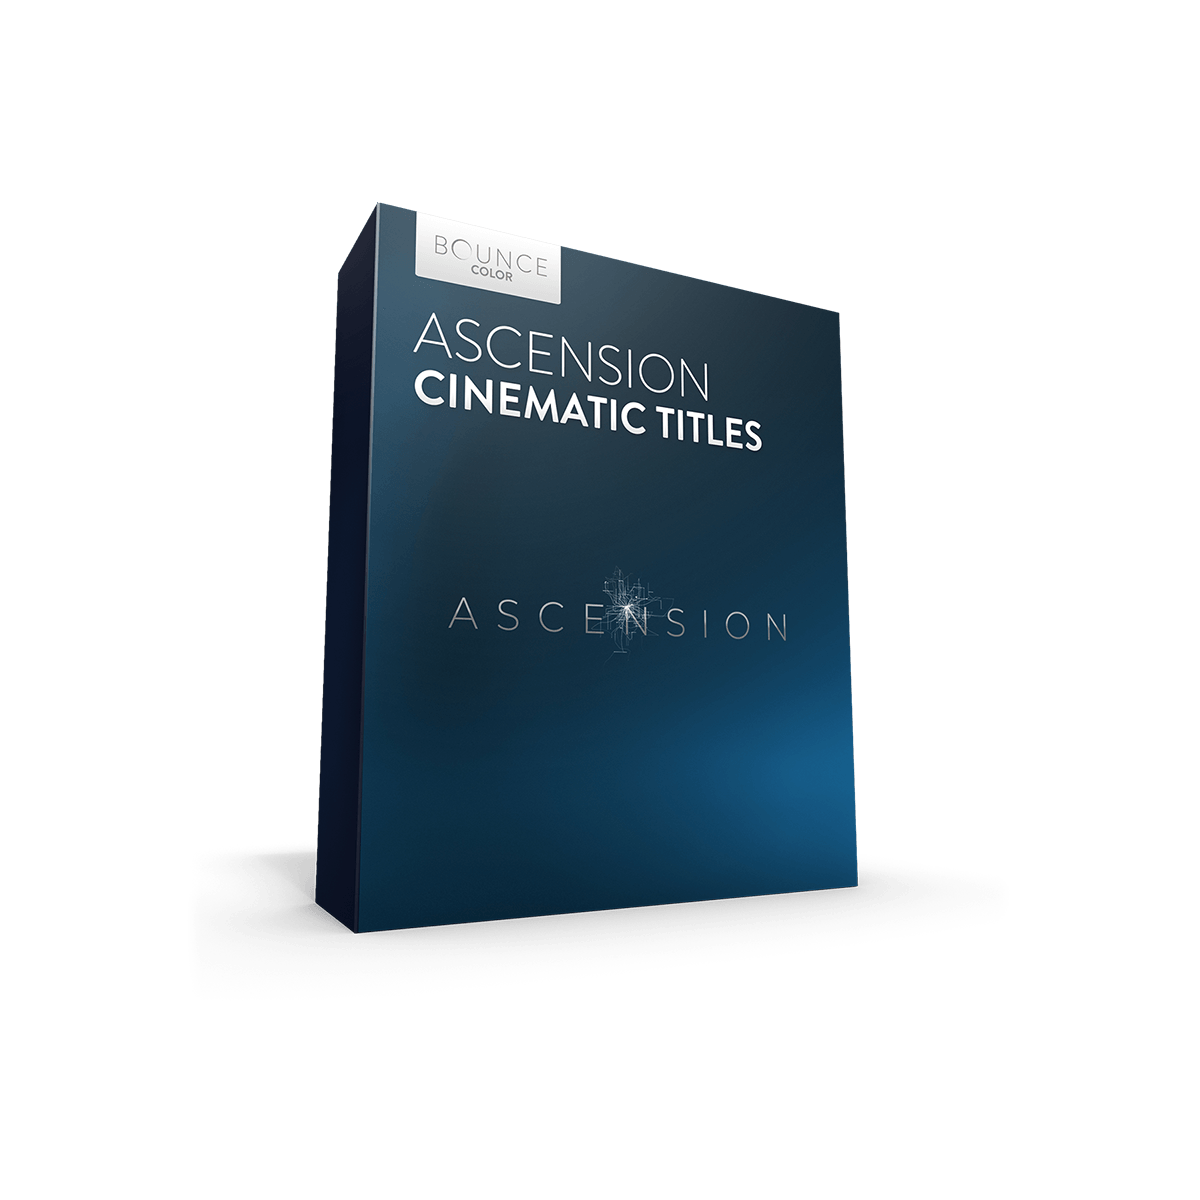 ascension after effects cinematic